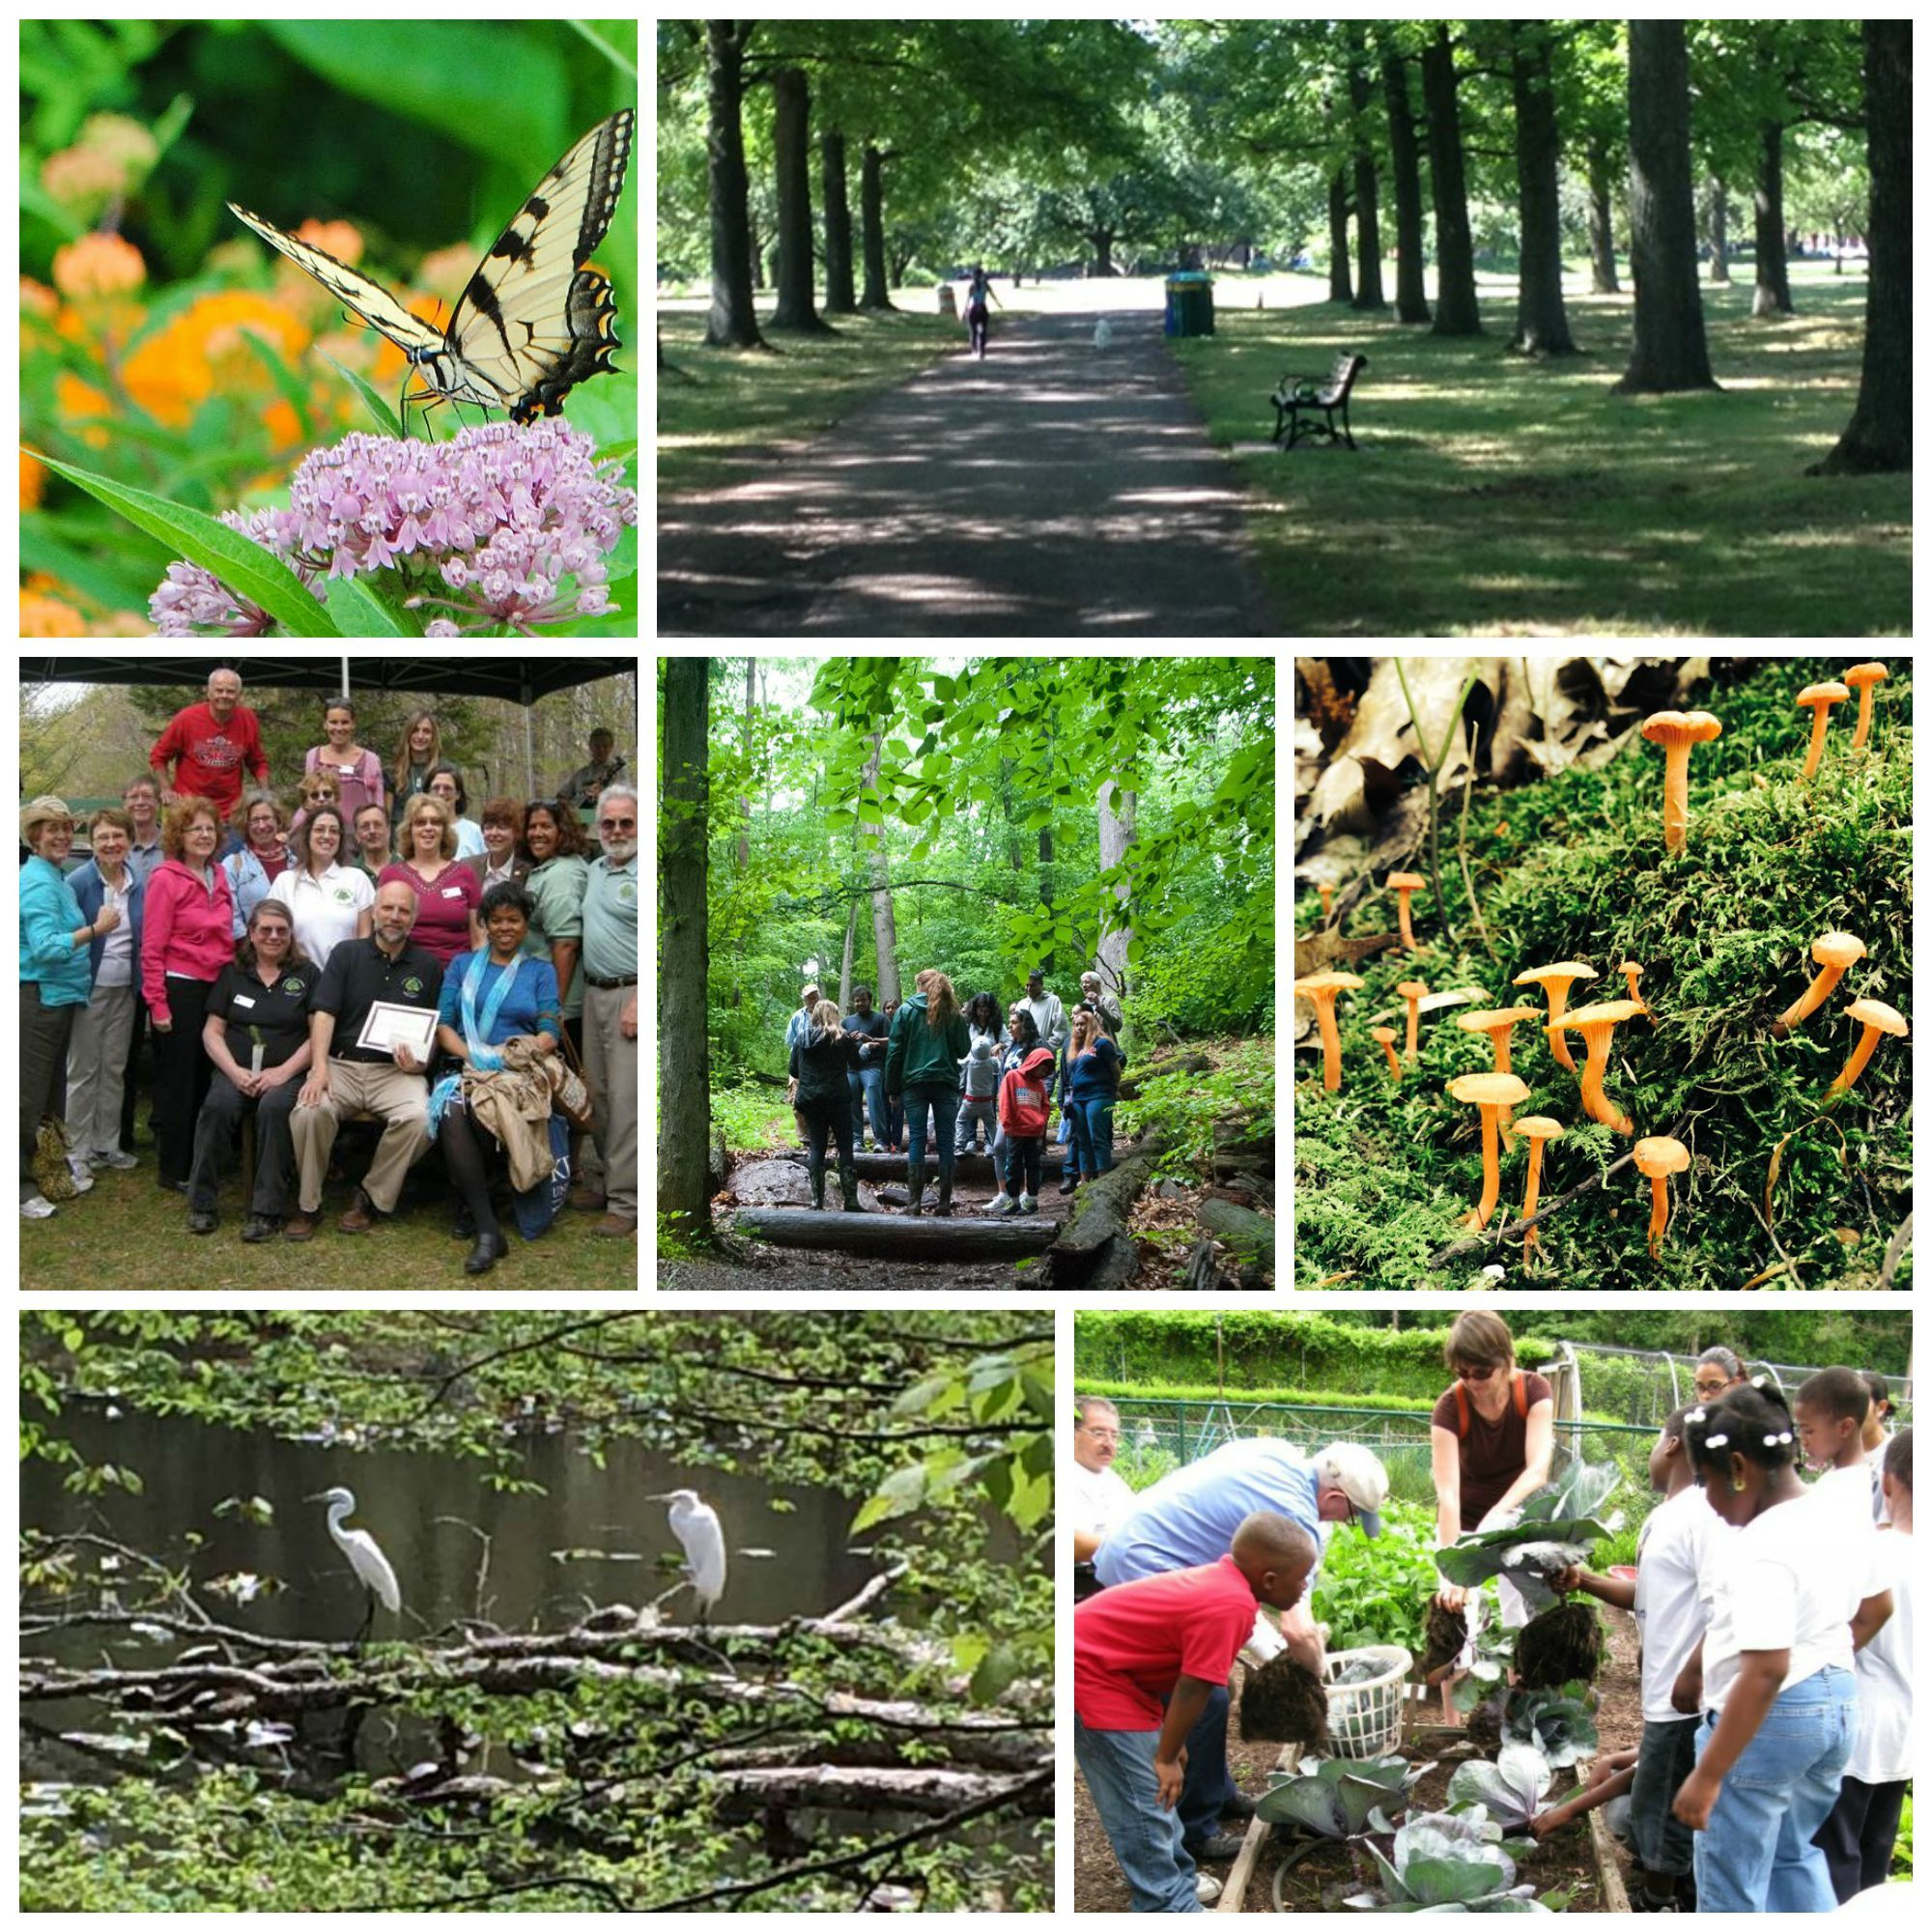 3bc42b6d72e8a6b88da0_Go4Life_Senior_Fitness_in_Union_County_Parks__collage_.jpg